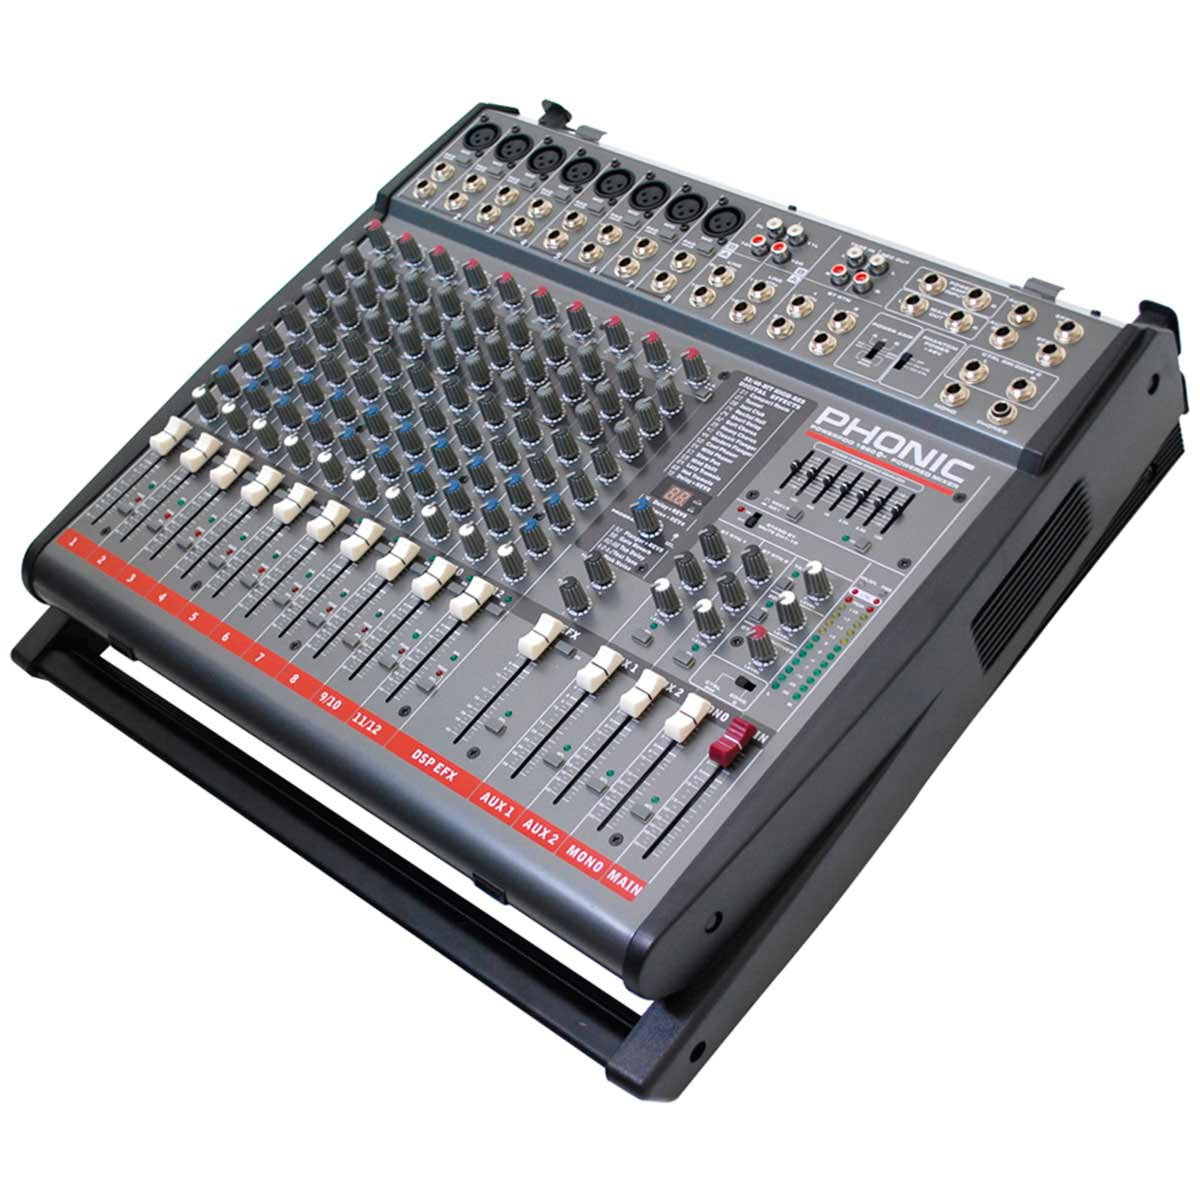 1860Plus - Mesa de Som / Mixer 12 Canais Powerpod 1860 Plus - Phonic